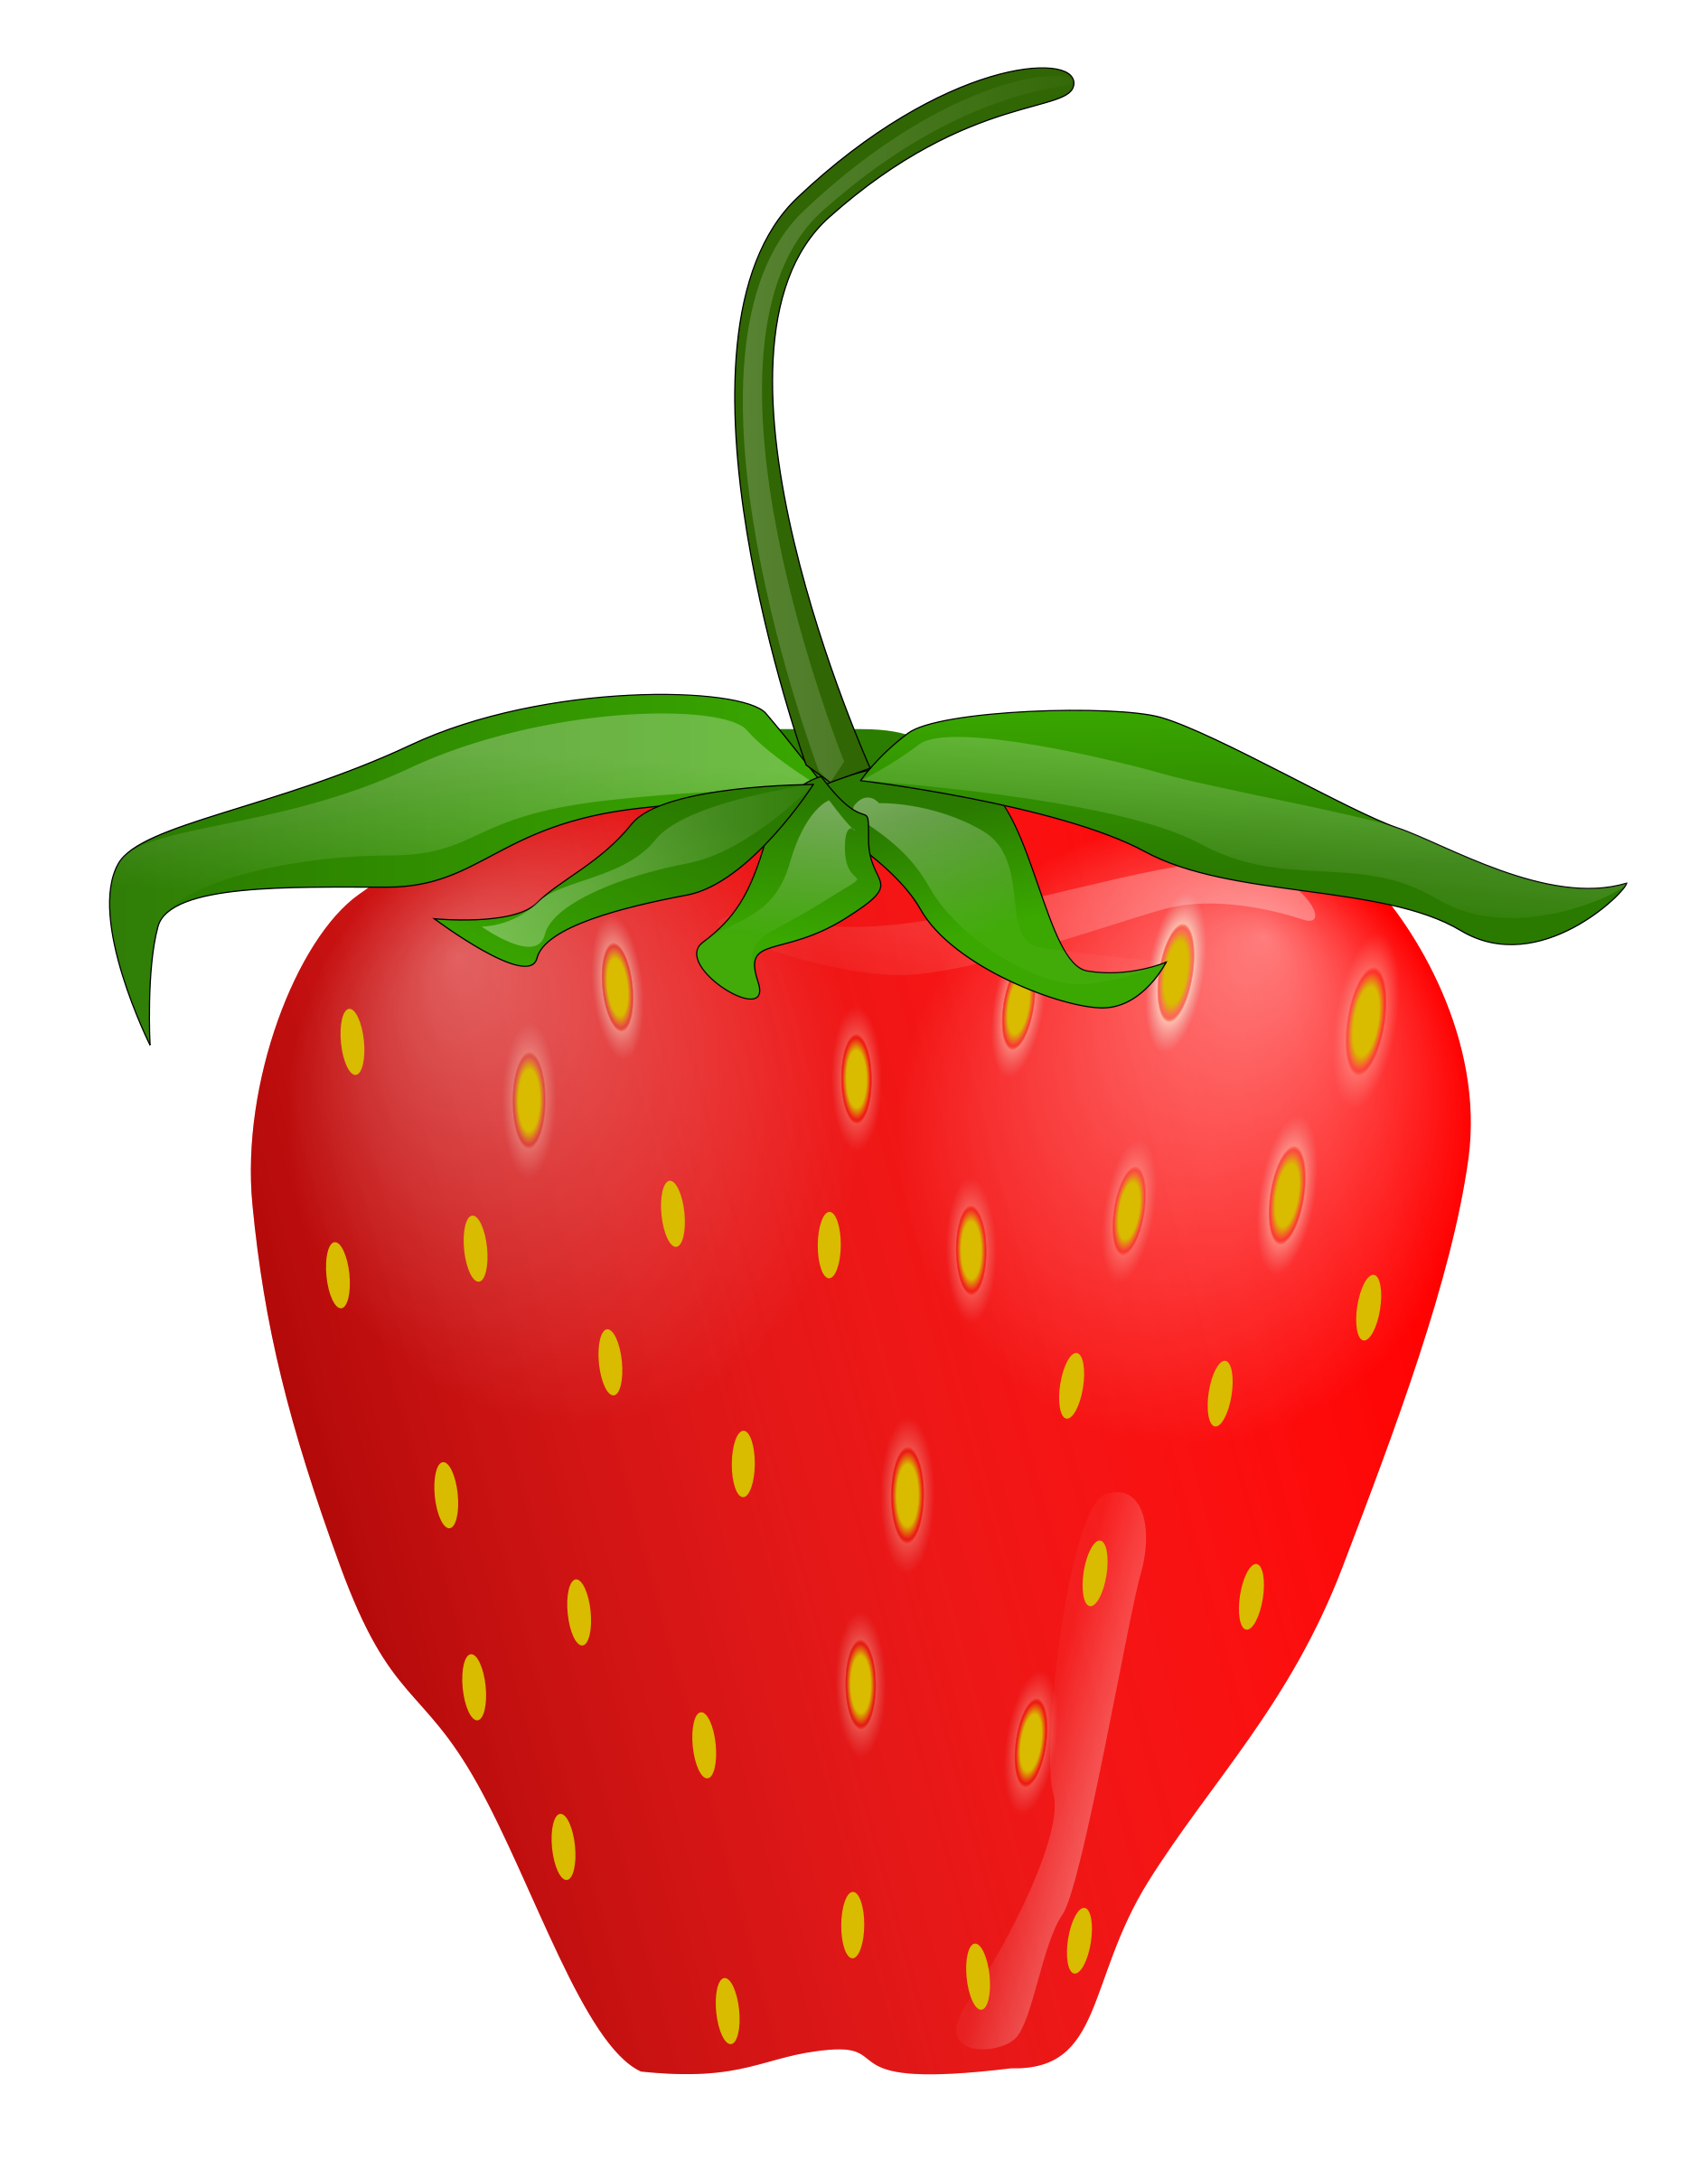 Strawberry flower clipart picture free Strawberry Clip Art Free | Clipart Panda - Free Clipart Images picture free